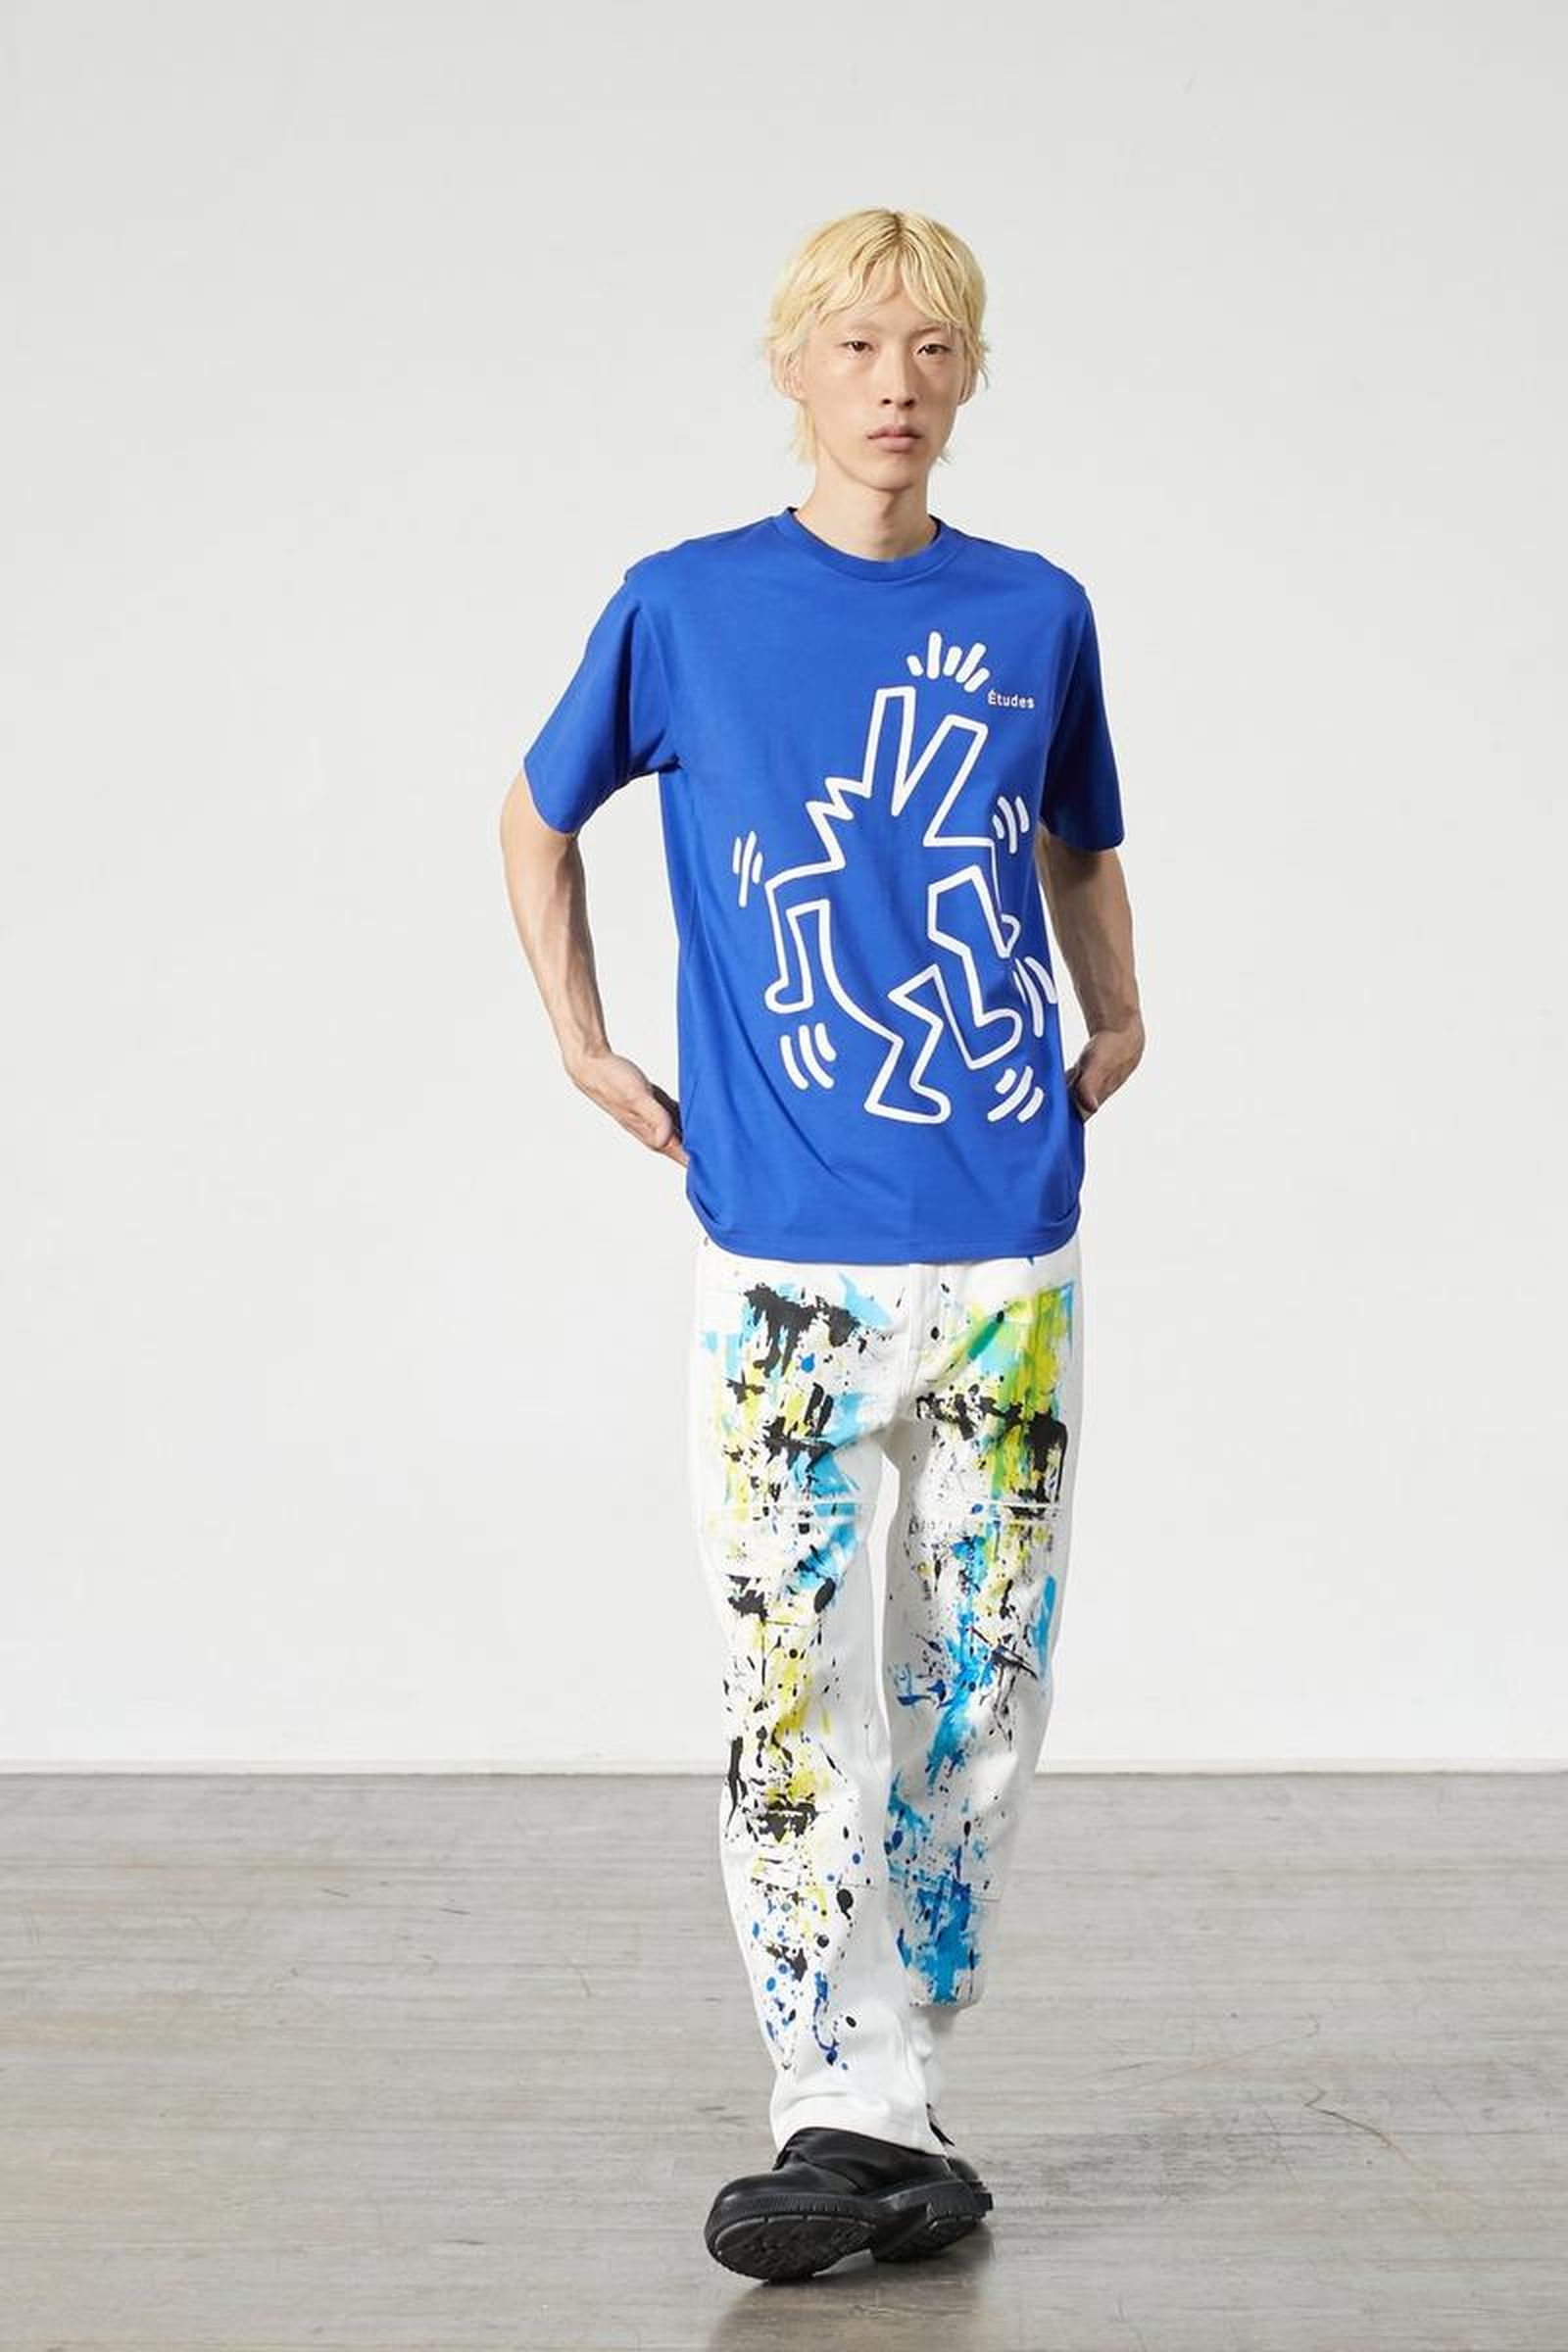 6etudes-keith-haring-ss20-collection